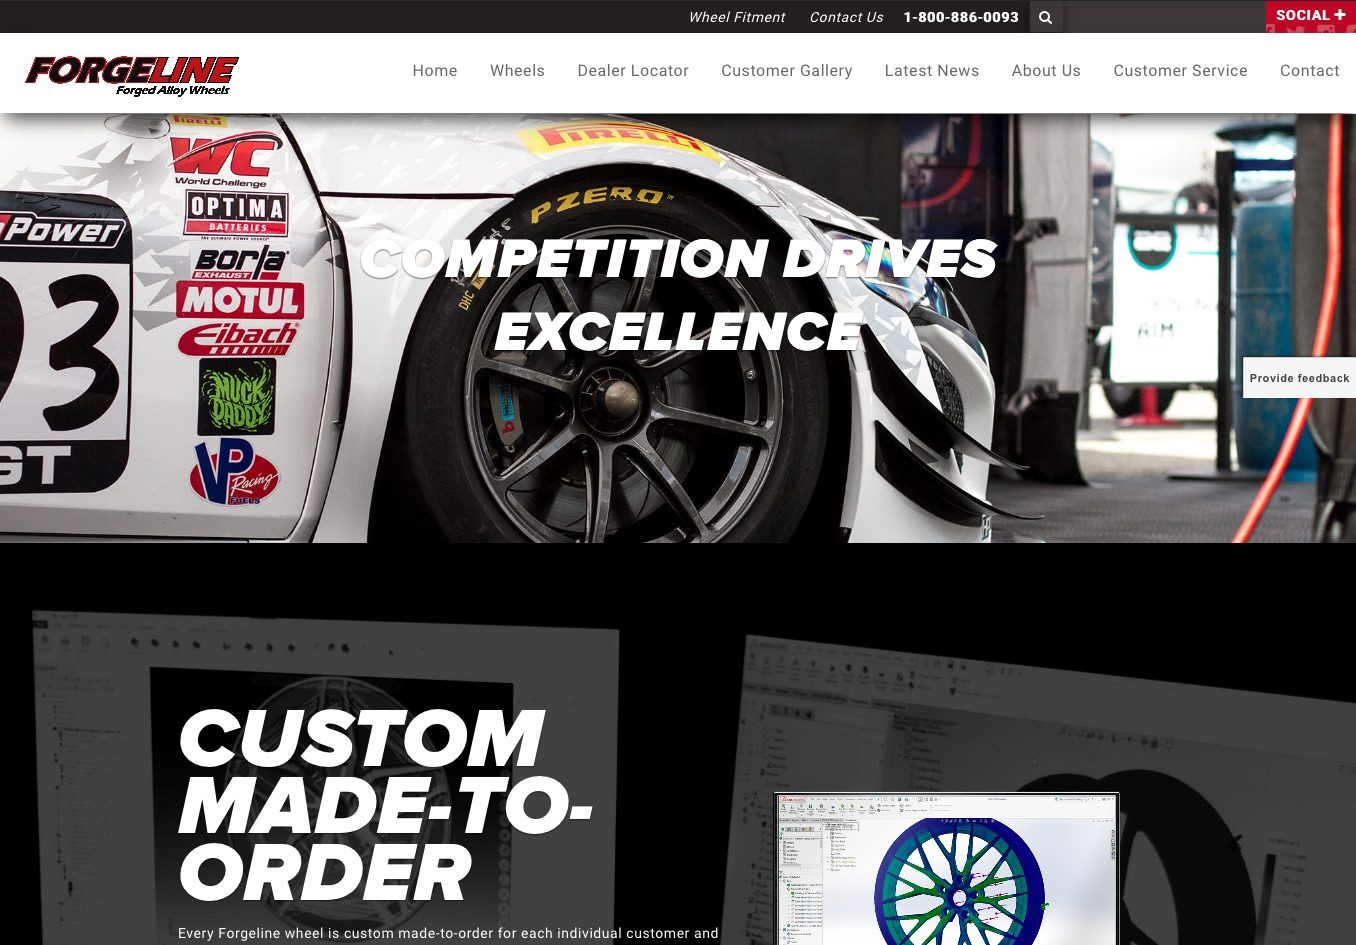 Forgeline.com home page screen shot as of 062518.